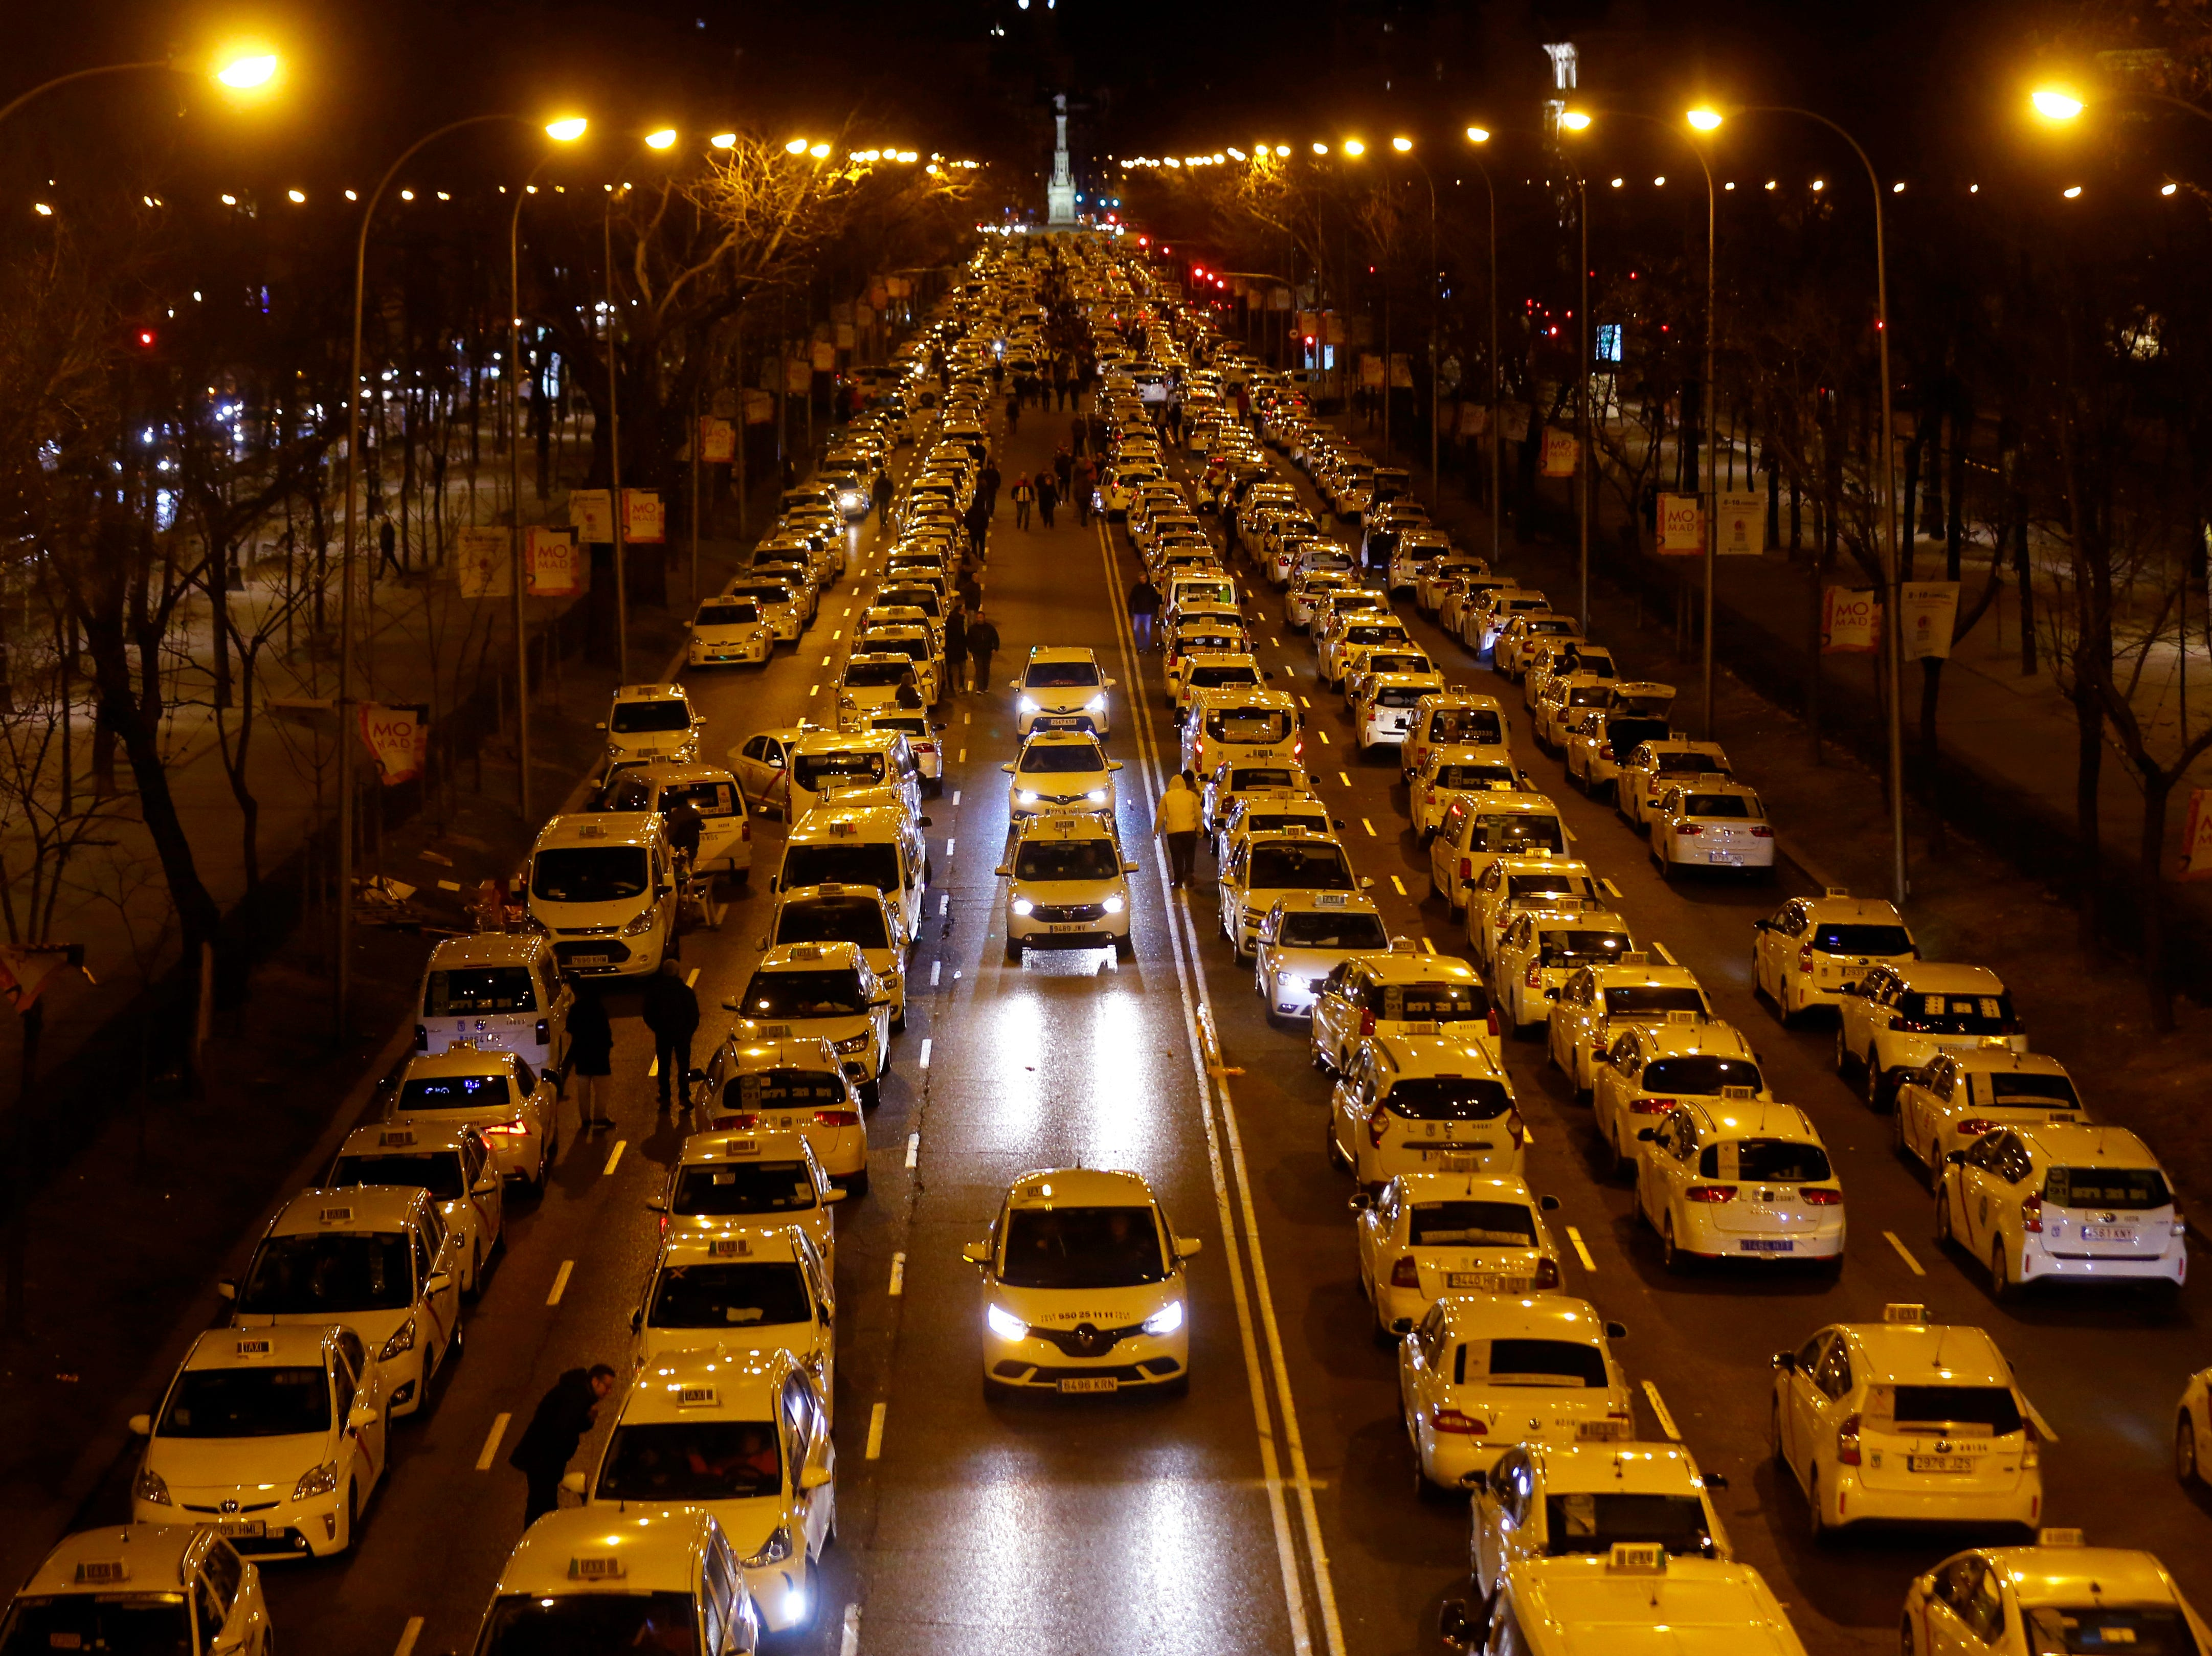 Spanish taxis block the Castellana Avenue, during a strike in Madrid, Spain, Monday, Jan. 28, 2019. The striking taxi drivers want the regional government in Madrid to impose tighter regulations for rides hailed through apps like Uber and Cabify.